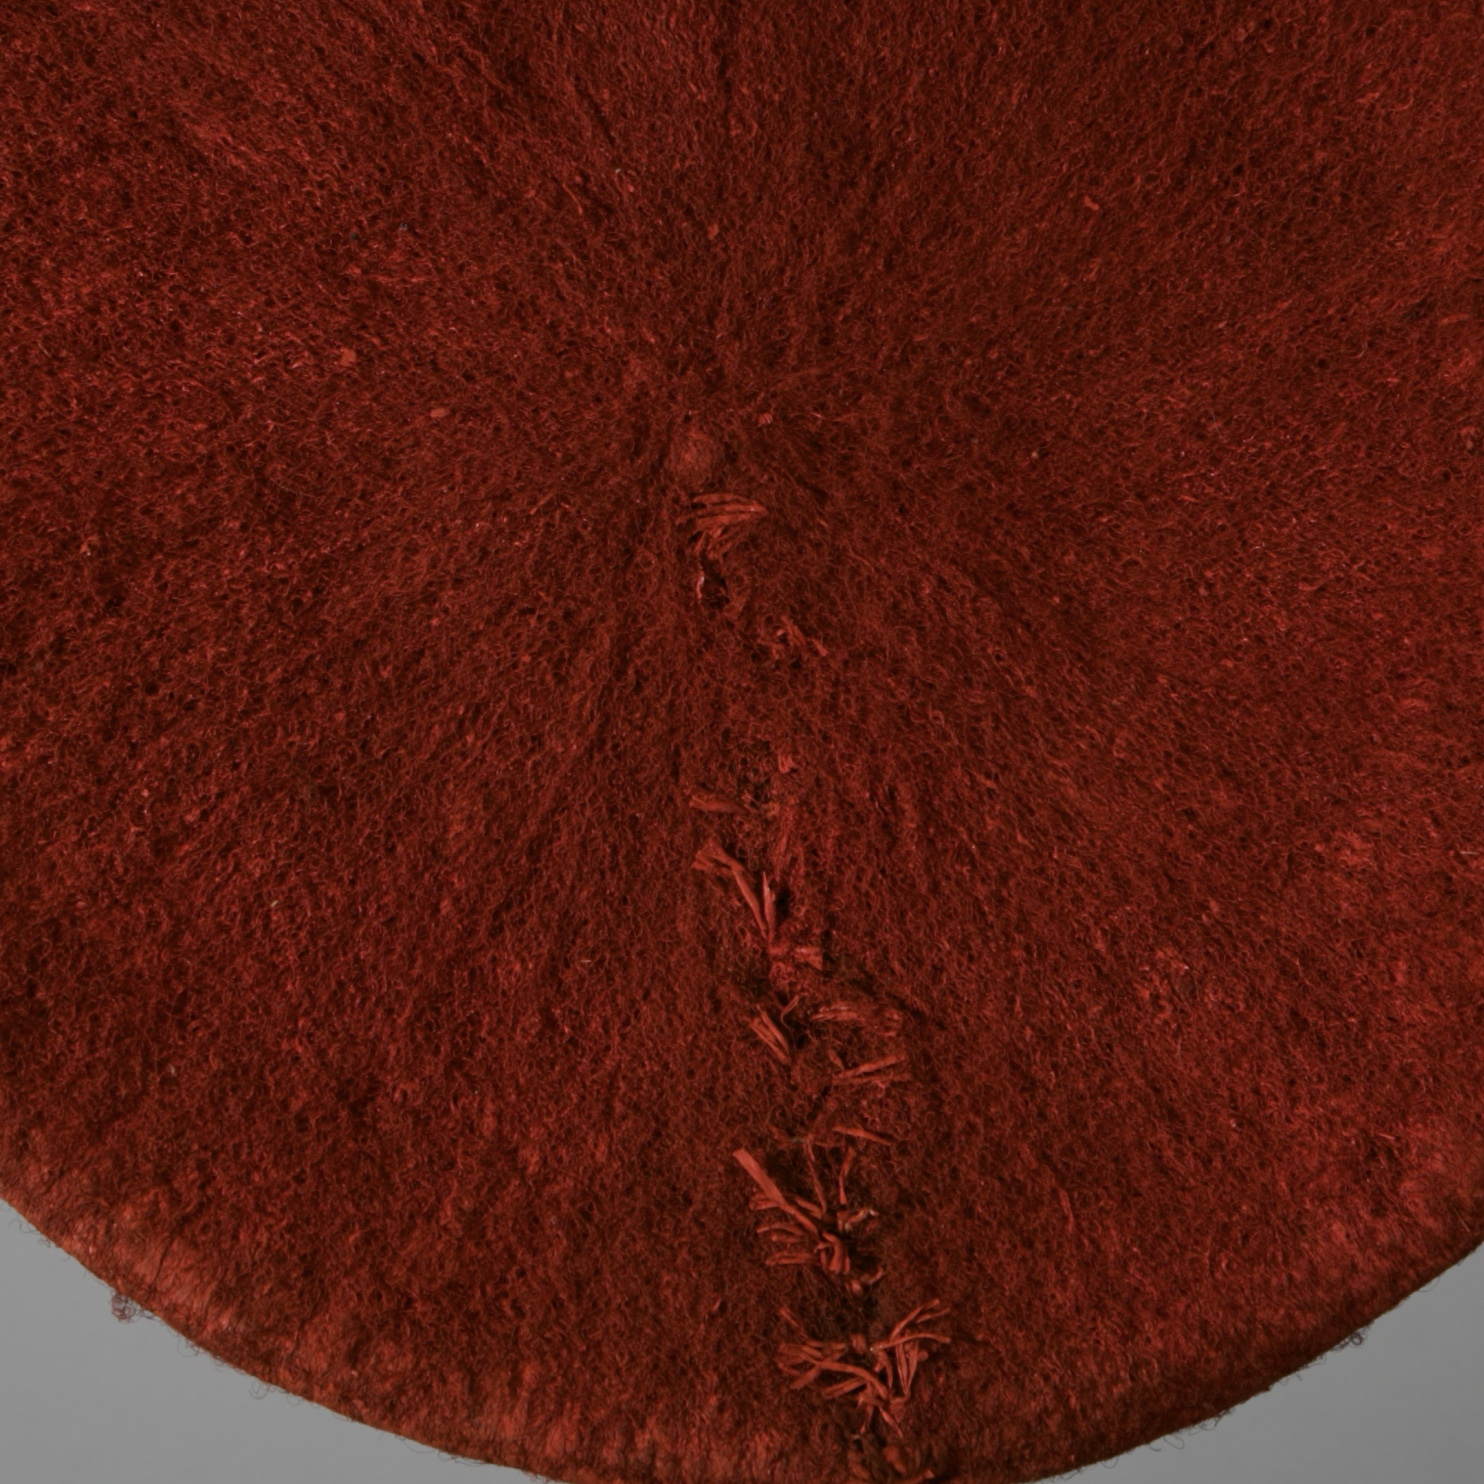 A SERENE RED ISICOLO HAT, ZULU TRIBE SOUTH AFRICA ( No 3911)